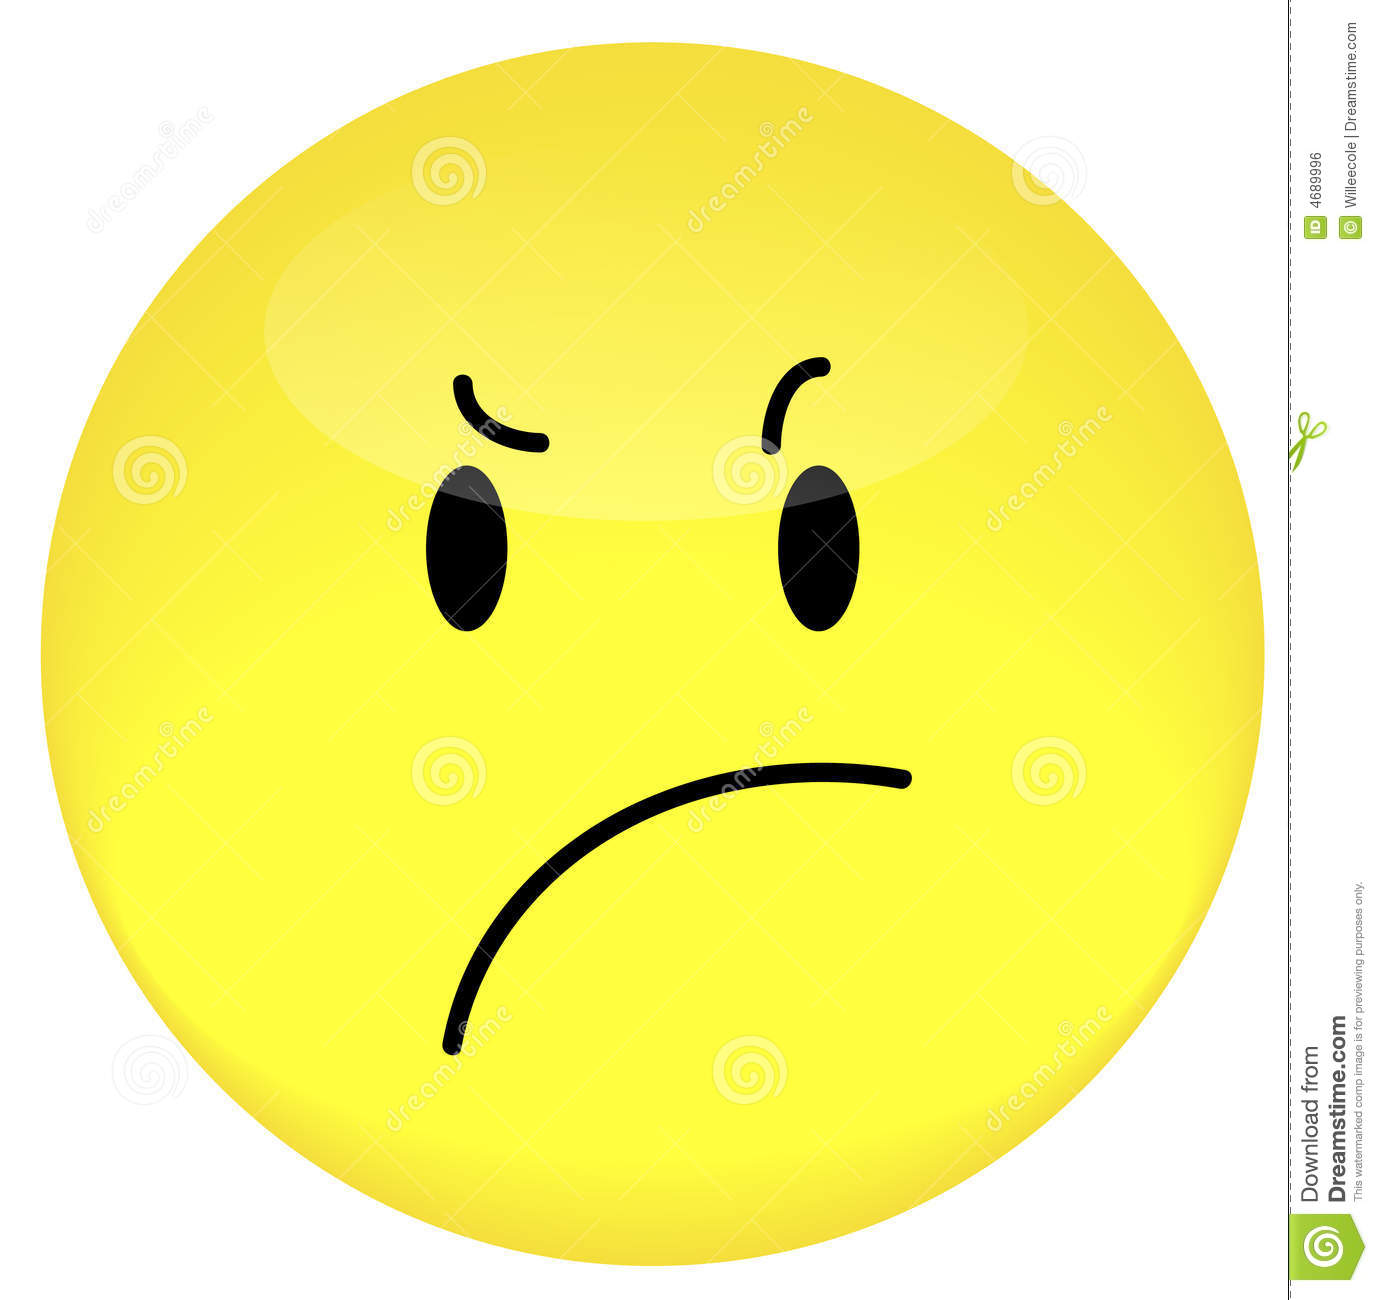 Frustrated Face Clipart - Clipart Suggest